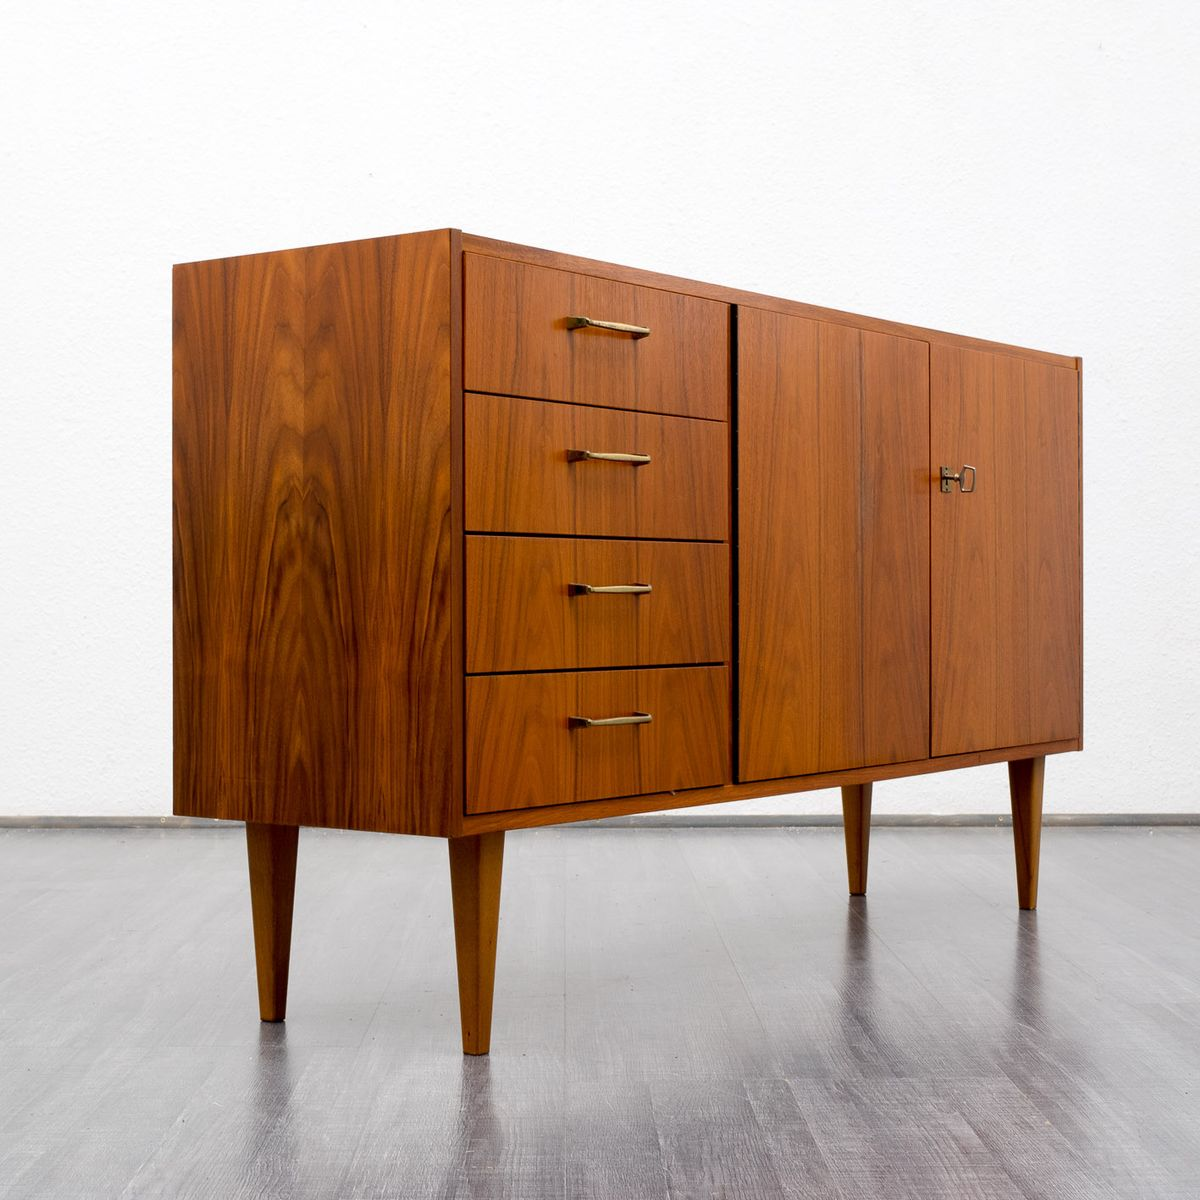 Mid century german walnut sideboard for sale at pamono - Sideboard mid century ...